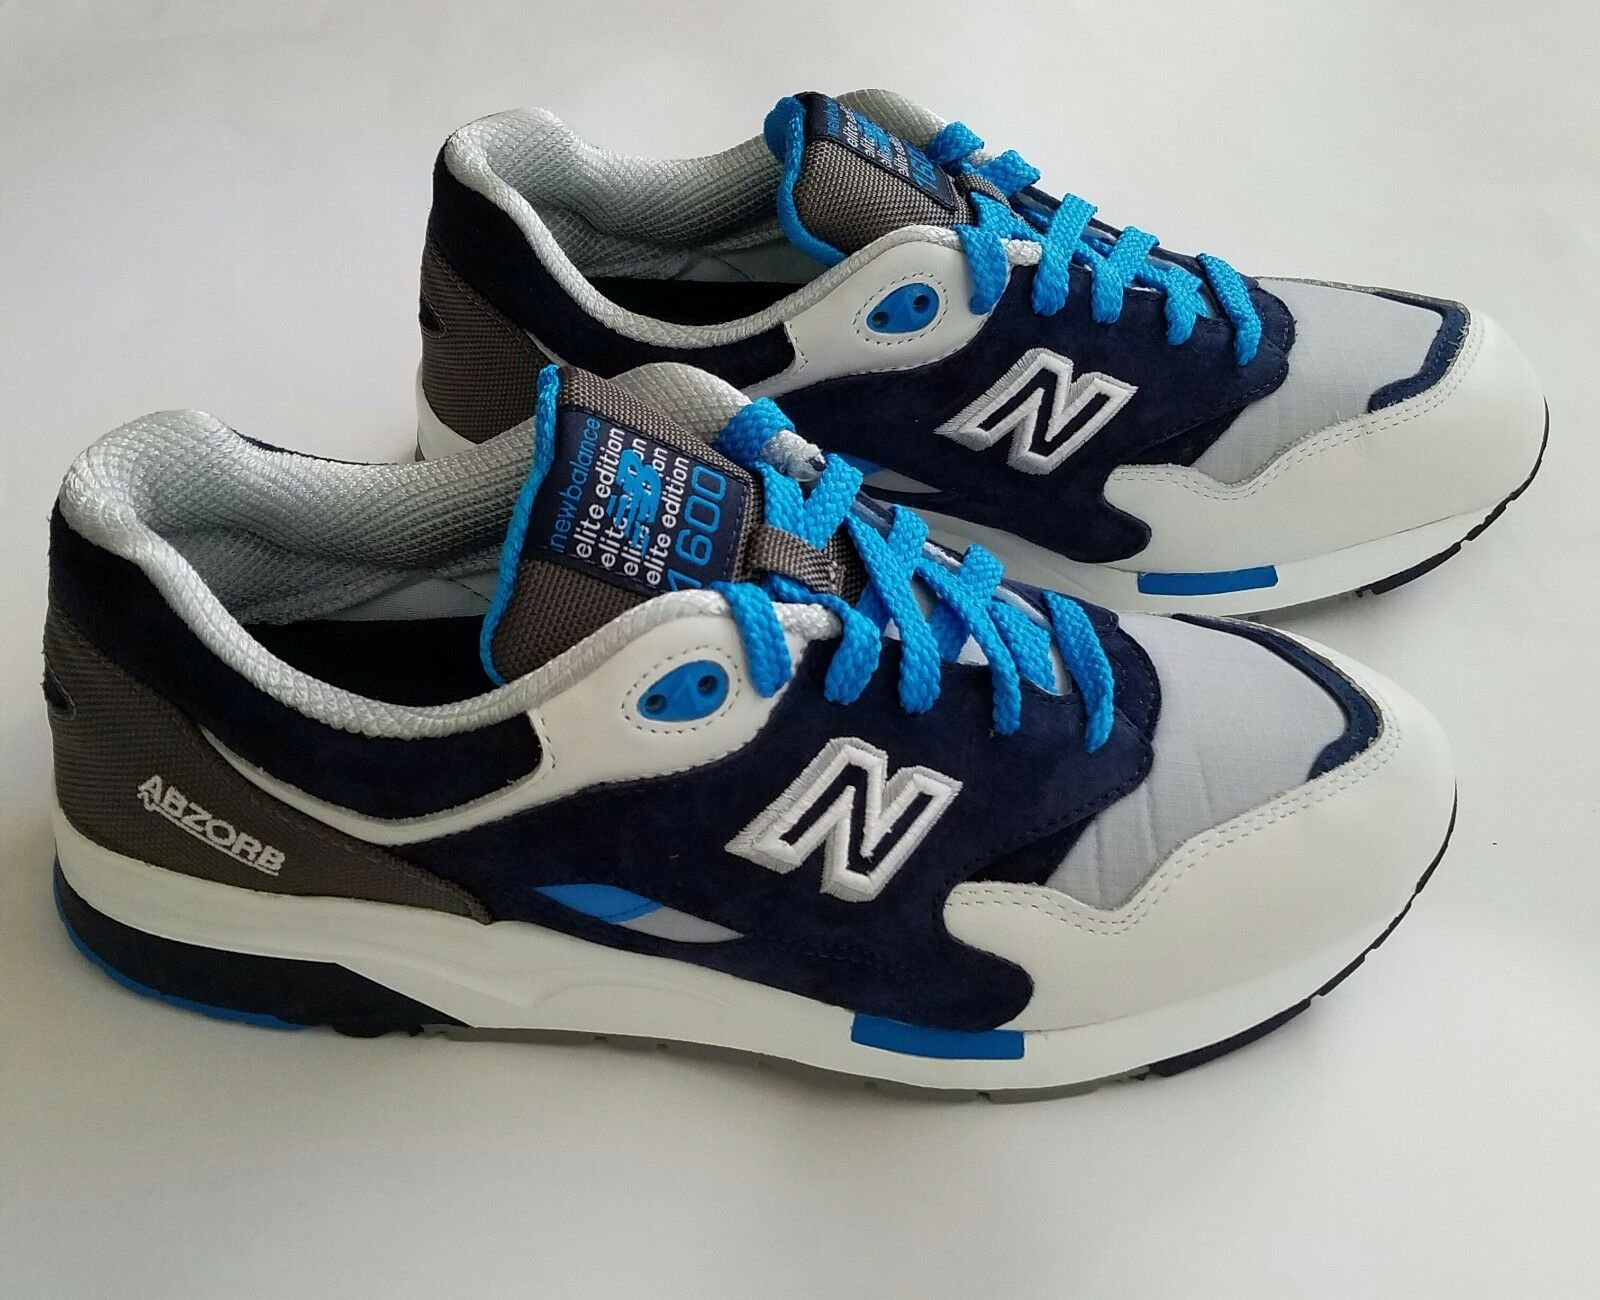 New blanco Balance cm1600co mecha gris azul negro blanco New Suede Limited Runner comodo 435ec6